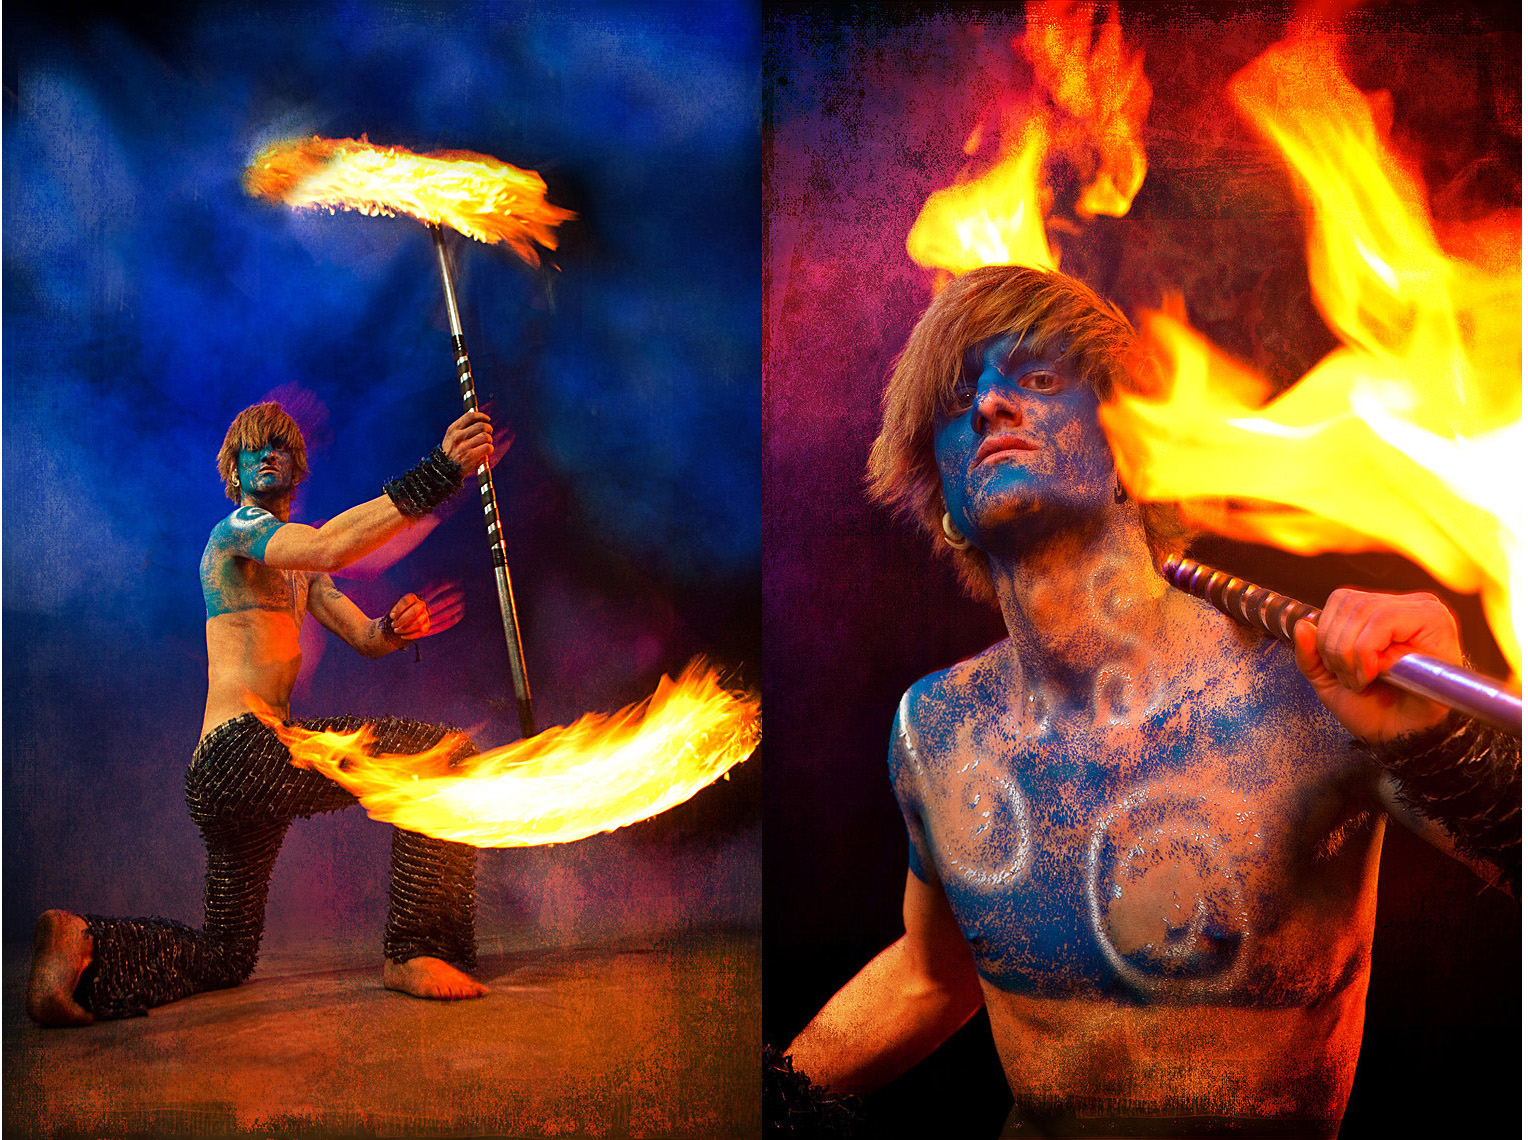 Burning Man portrait of Fire dancer